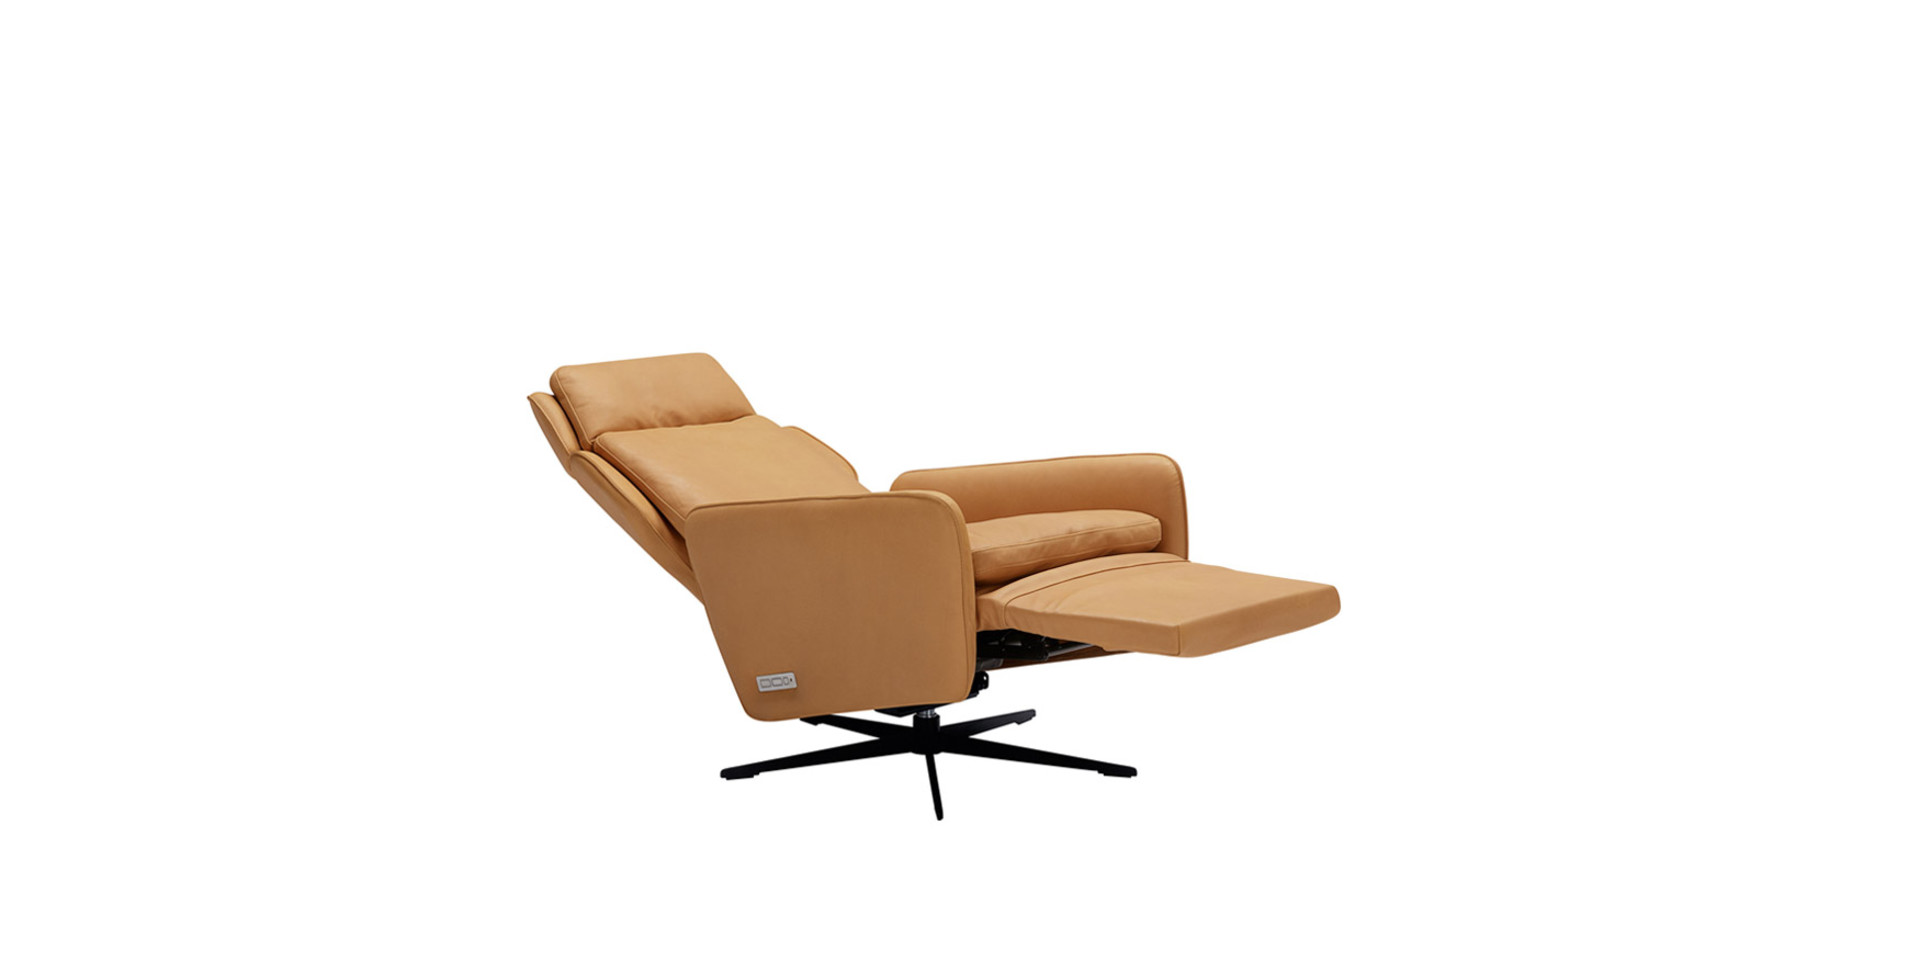 EVY_RELAX_armchair_aniline1_latte_3